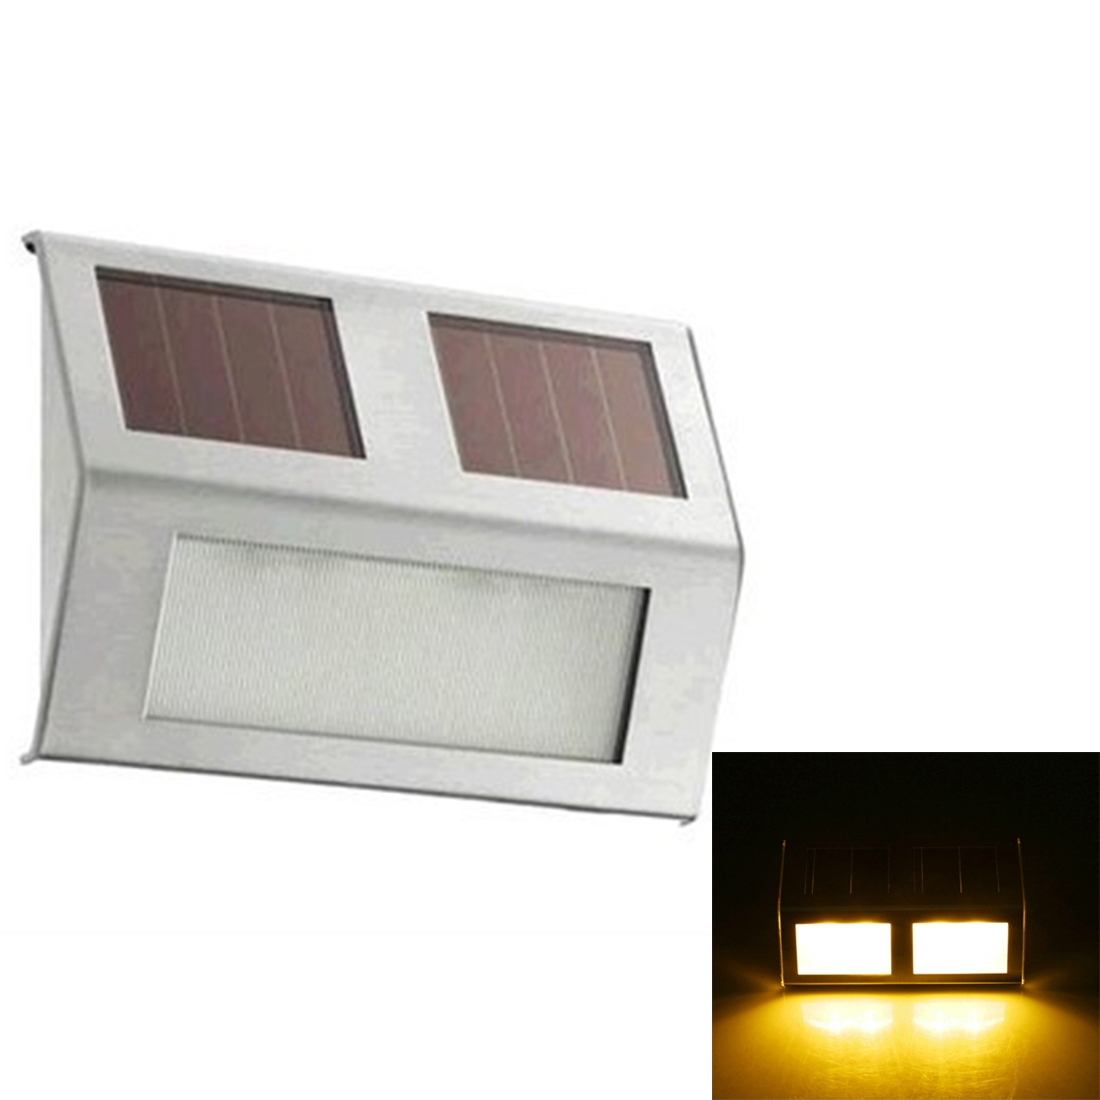 2 LEDs Solar Powered Light Sensor Control IP44 Waterproof LED Wall Lamp Outdoor Patio Yard Pathway Garden Stairs Step Night Security Lighting (Warm Light)